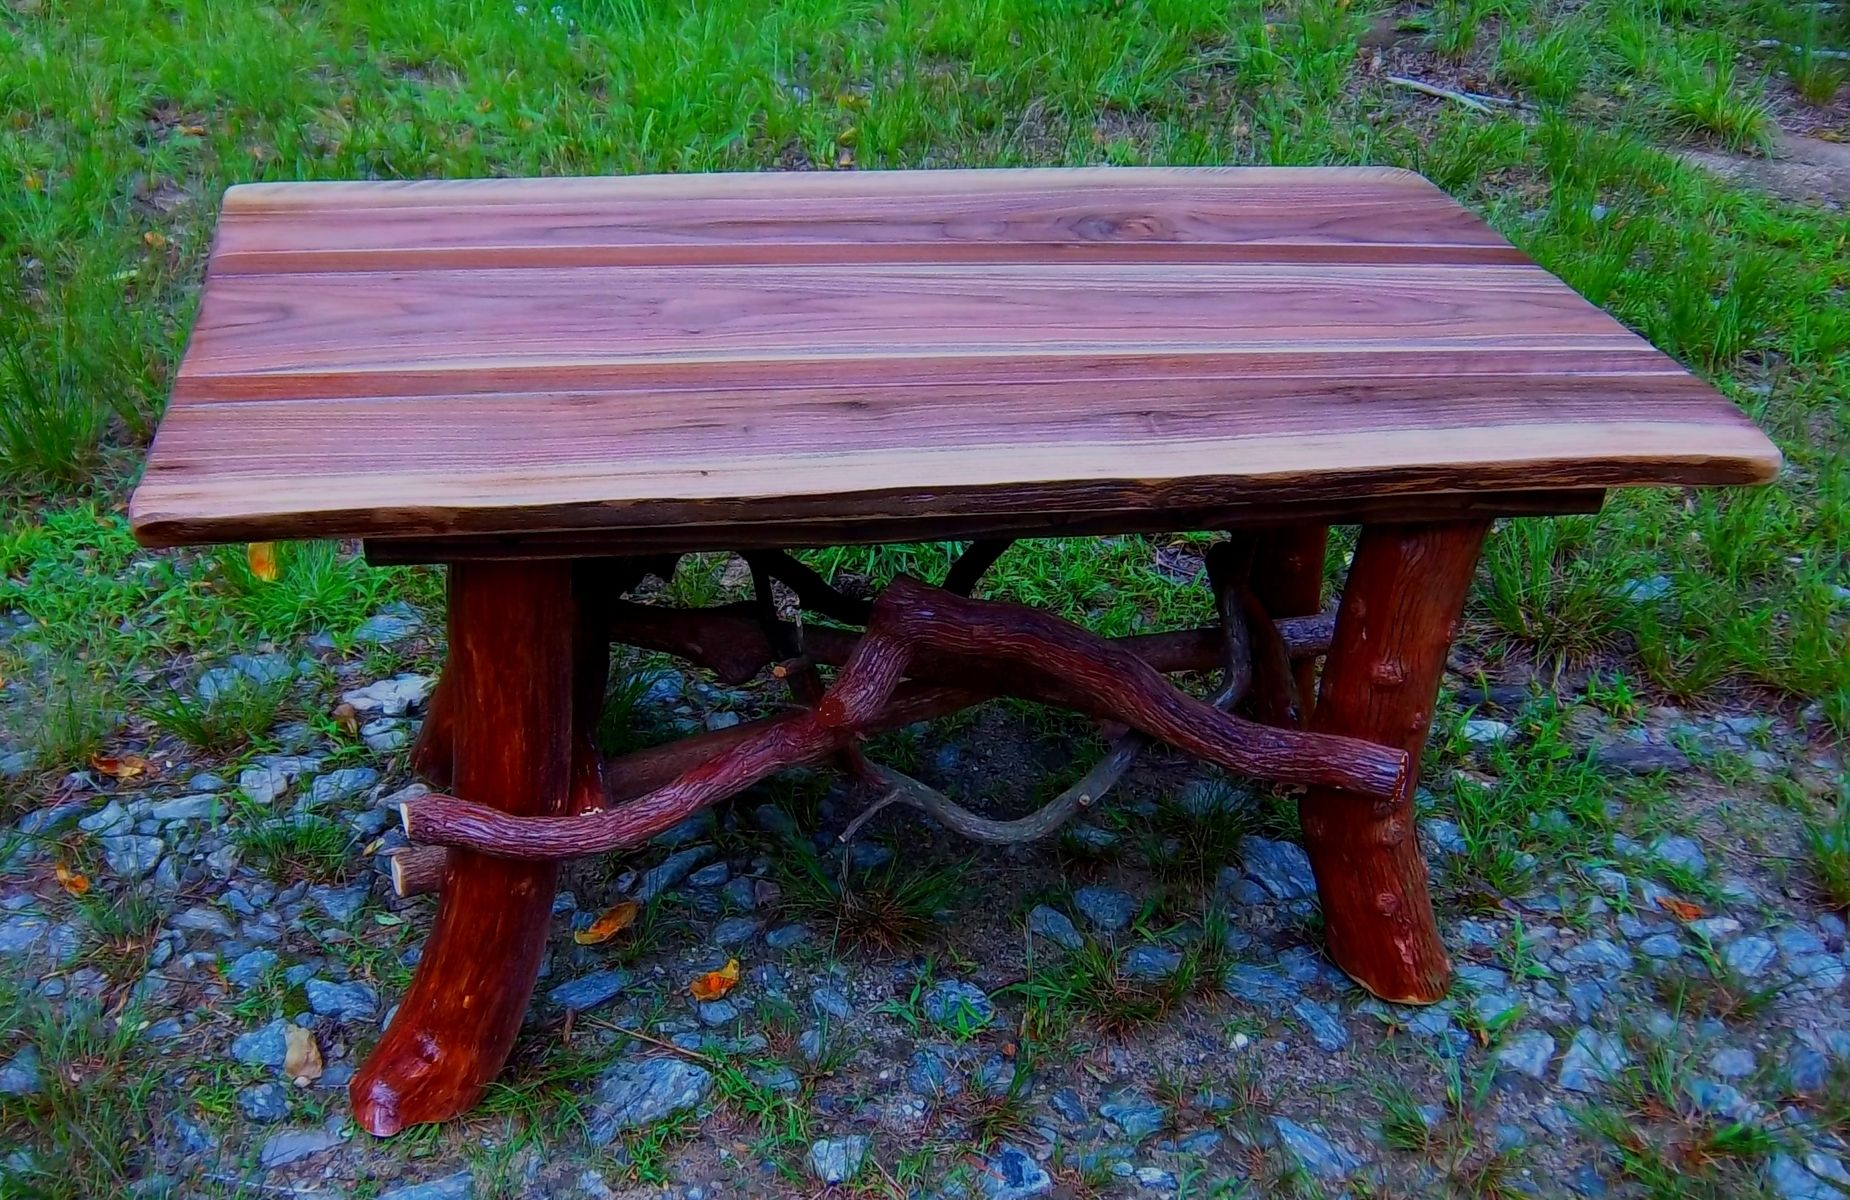 Rustic coffee tables unique and handmade from the log - Hand Crafted Rustic Coffee Table With Mountain Laurel Base Log Cabin Furniture By Blue Ridge Rustics Custommade Com